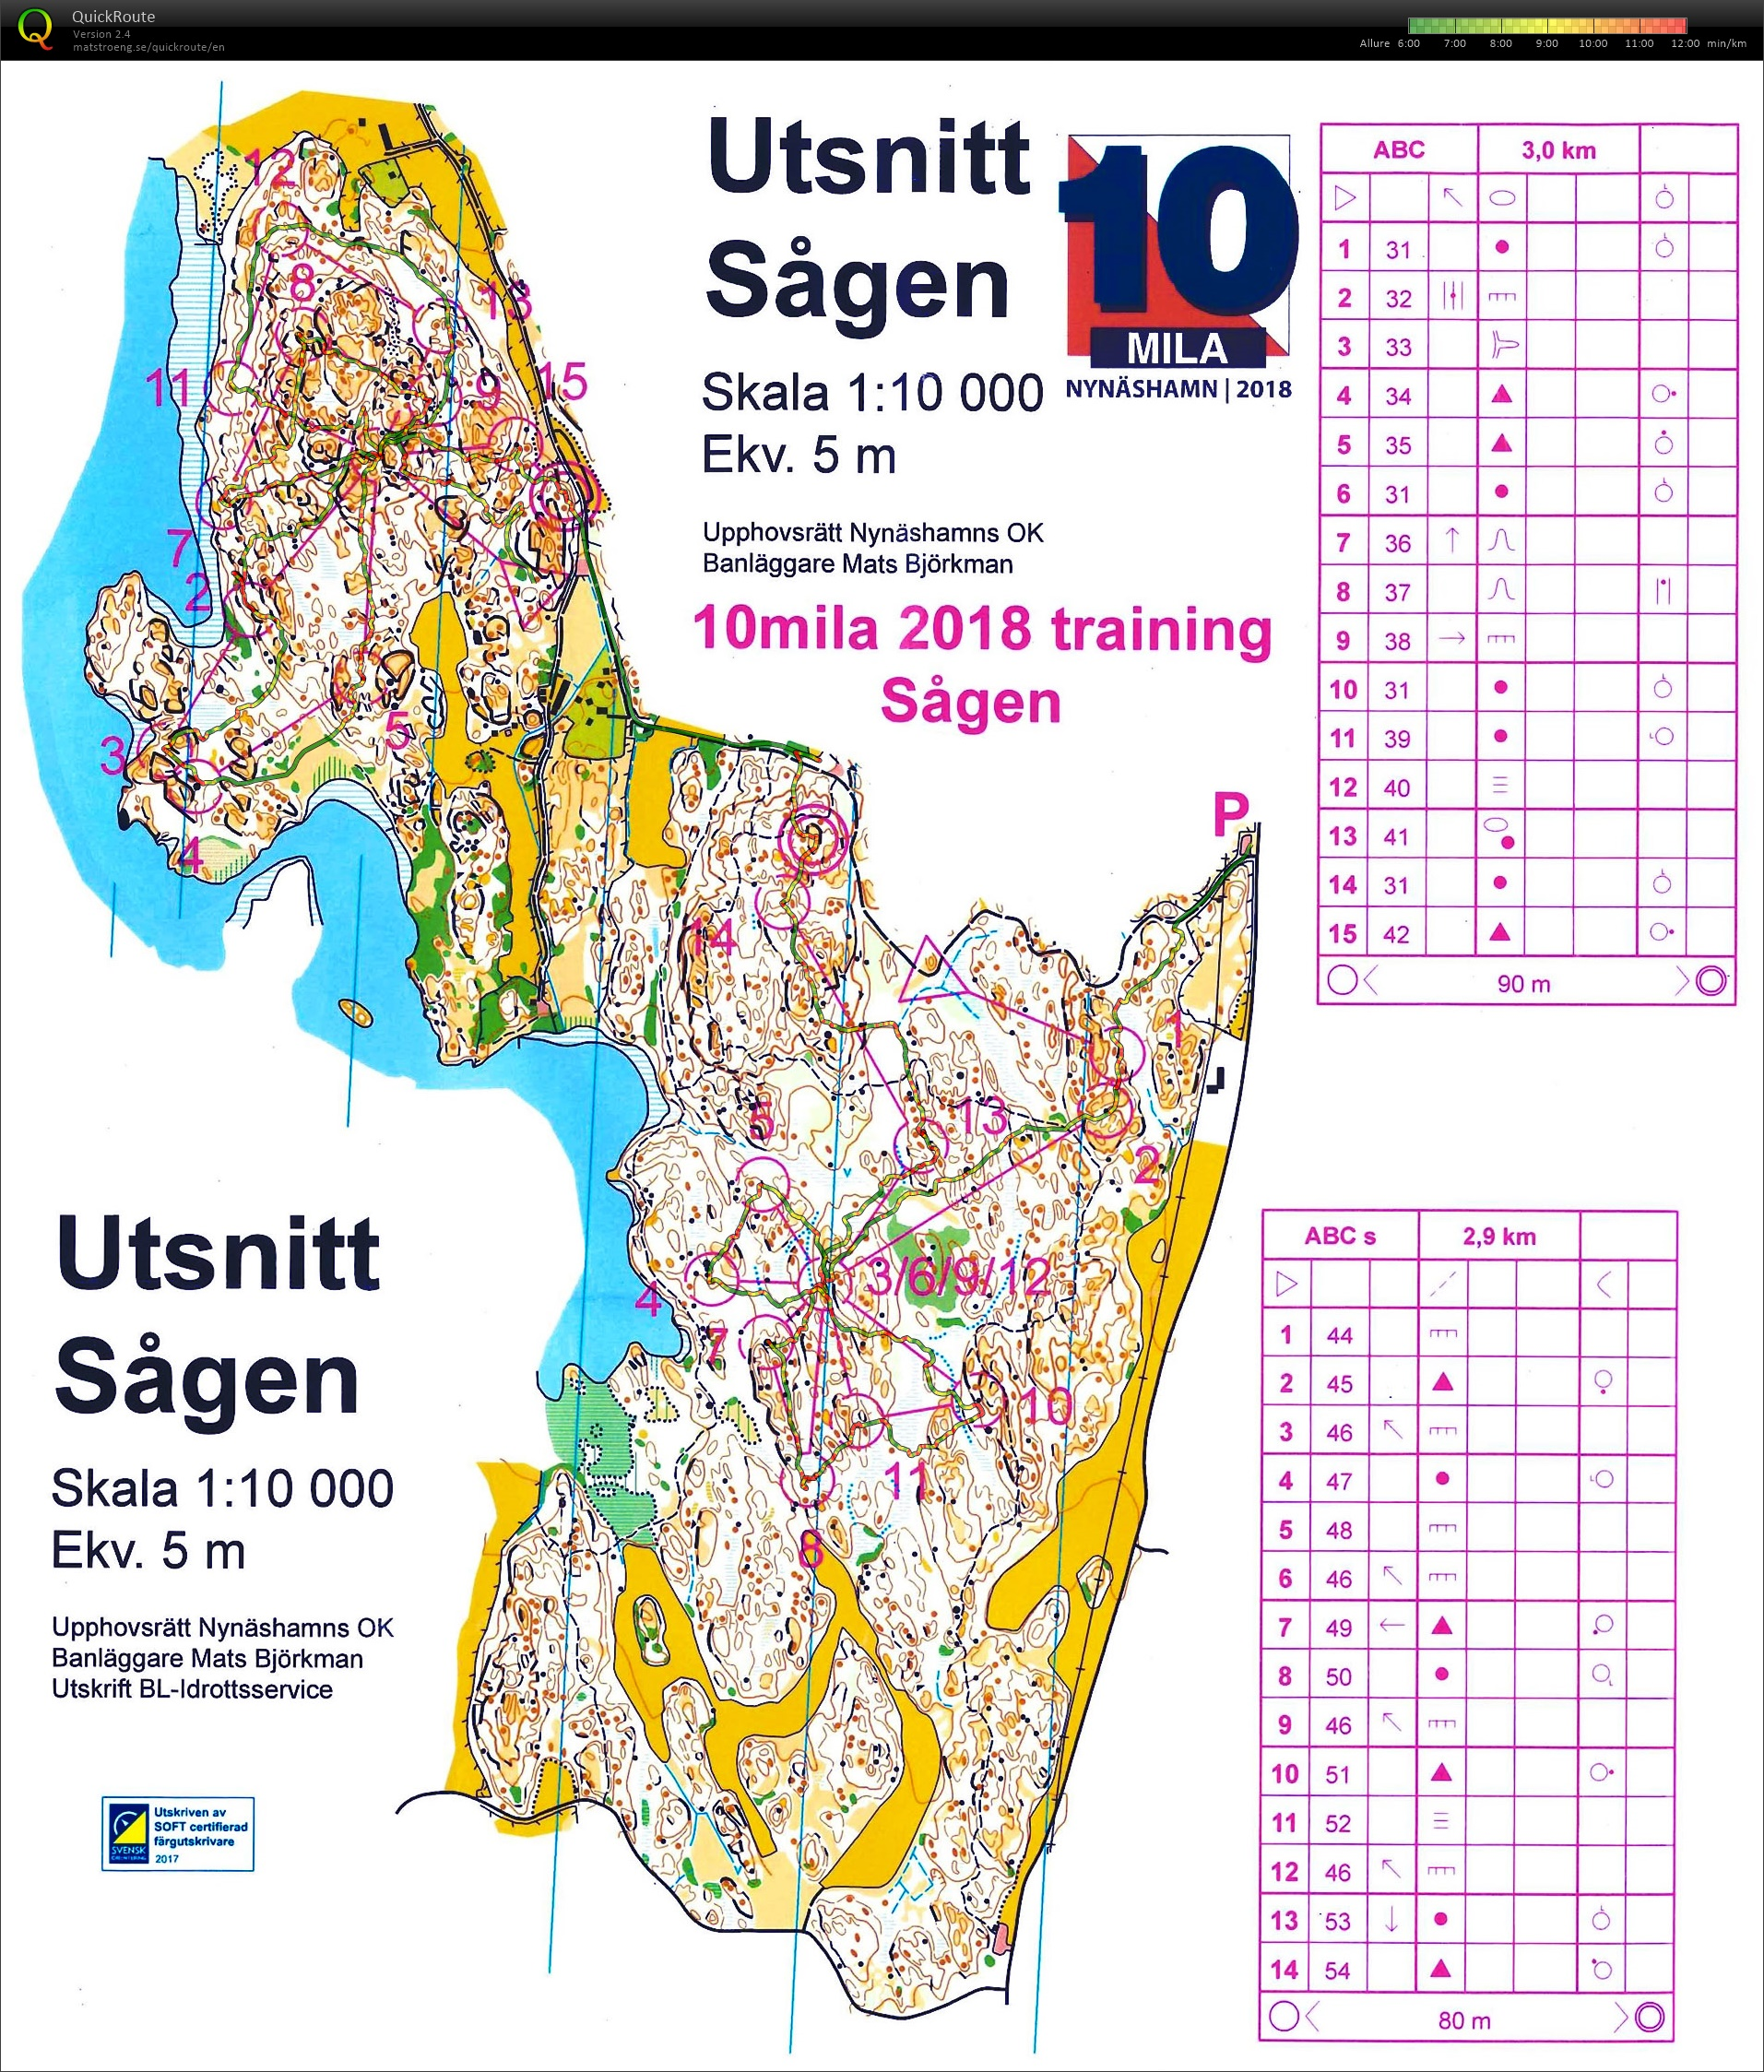 10mila training2 : Sågen (27/04/2018)